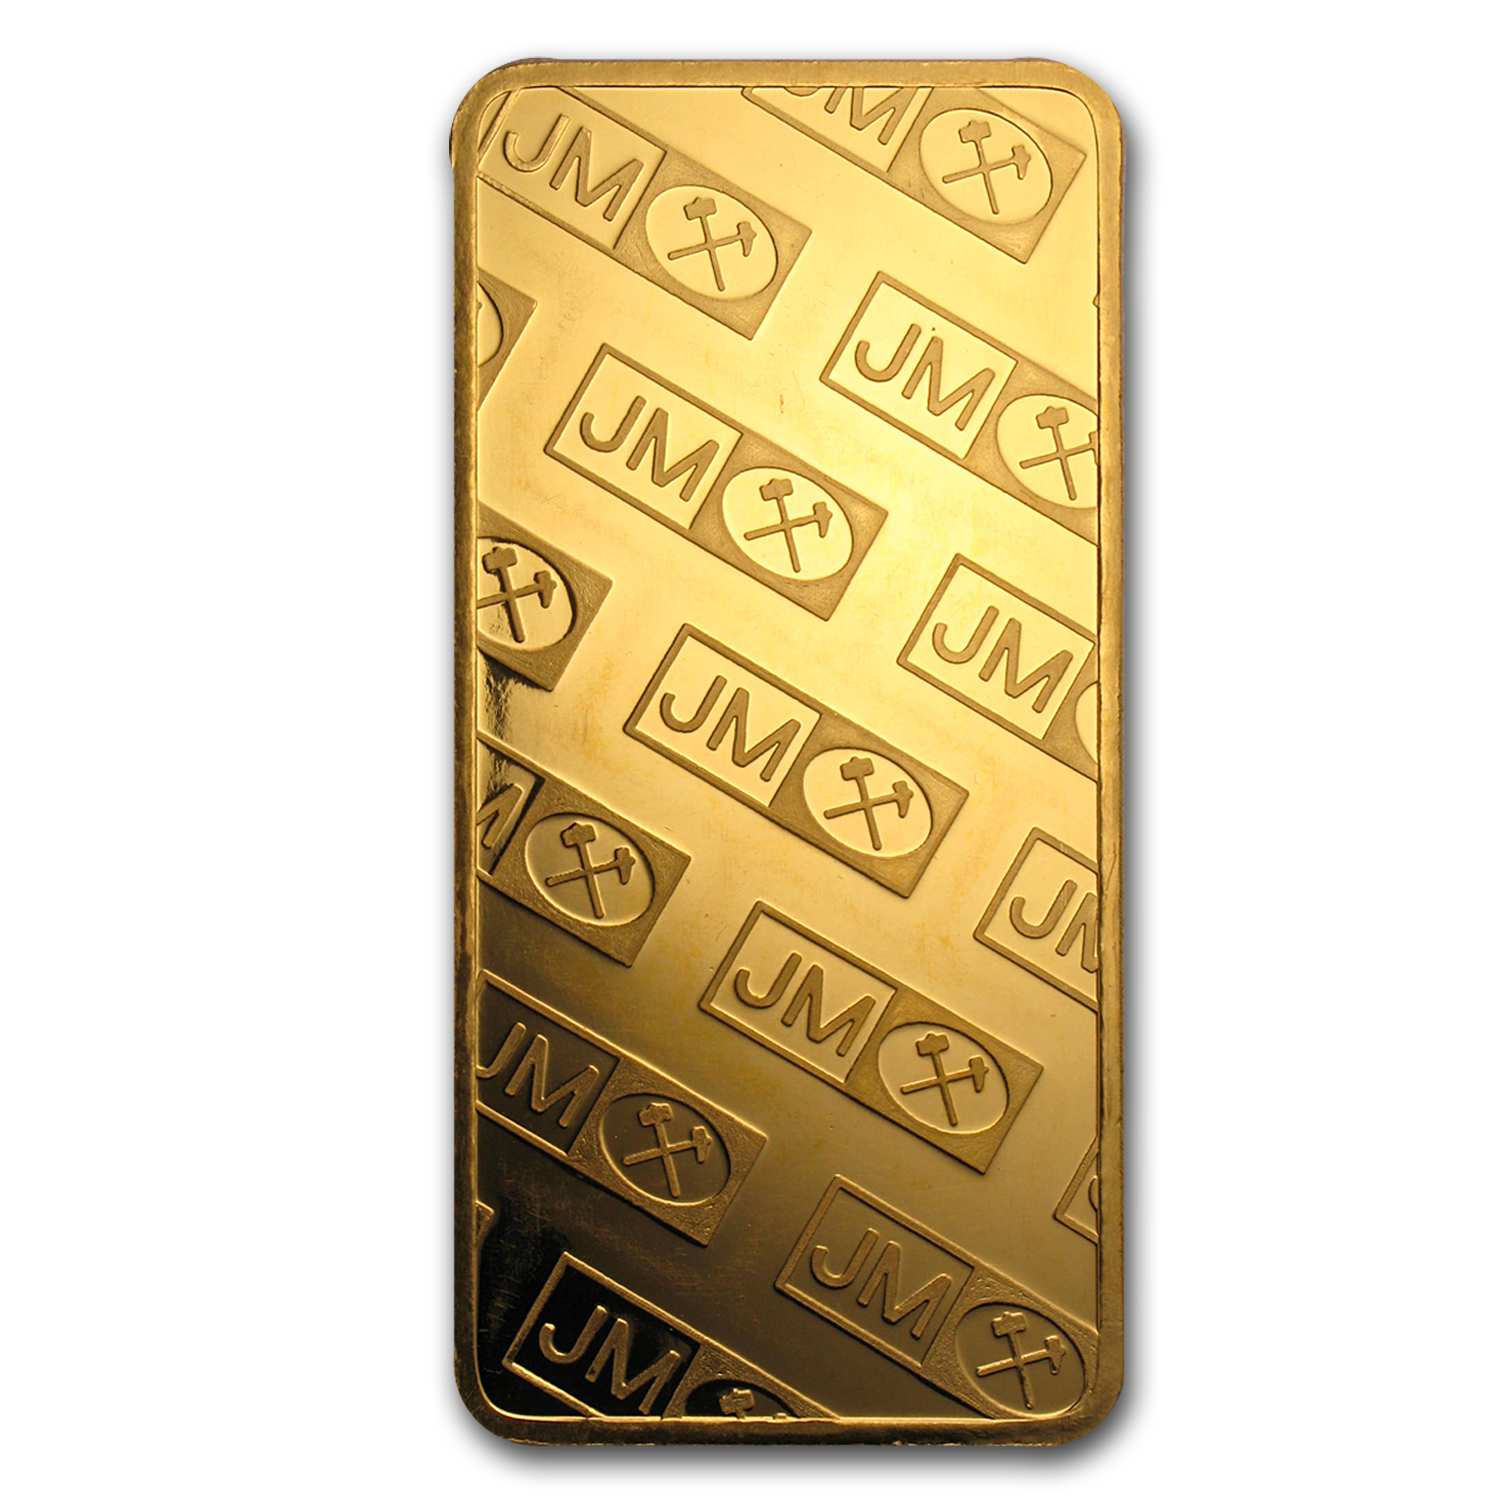 10 oz Gold Bars - Johnson Matthey (Pressed, Logo Back)